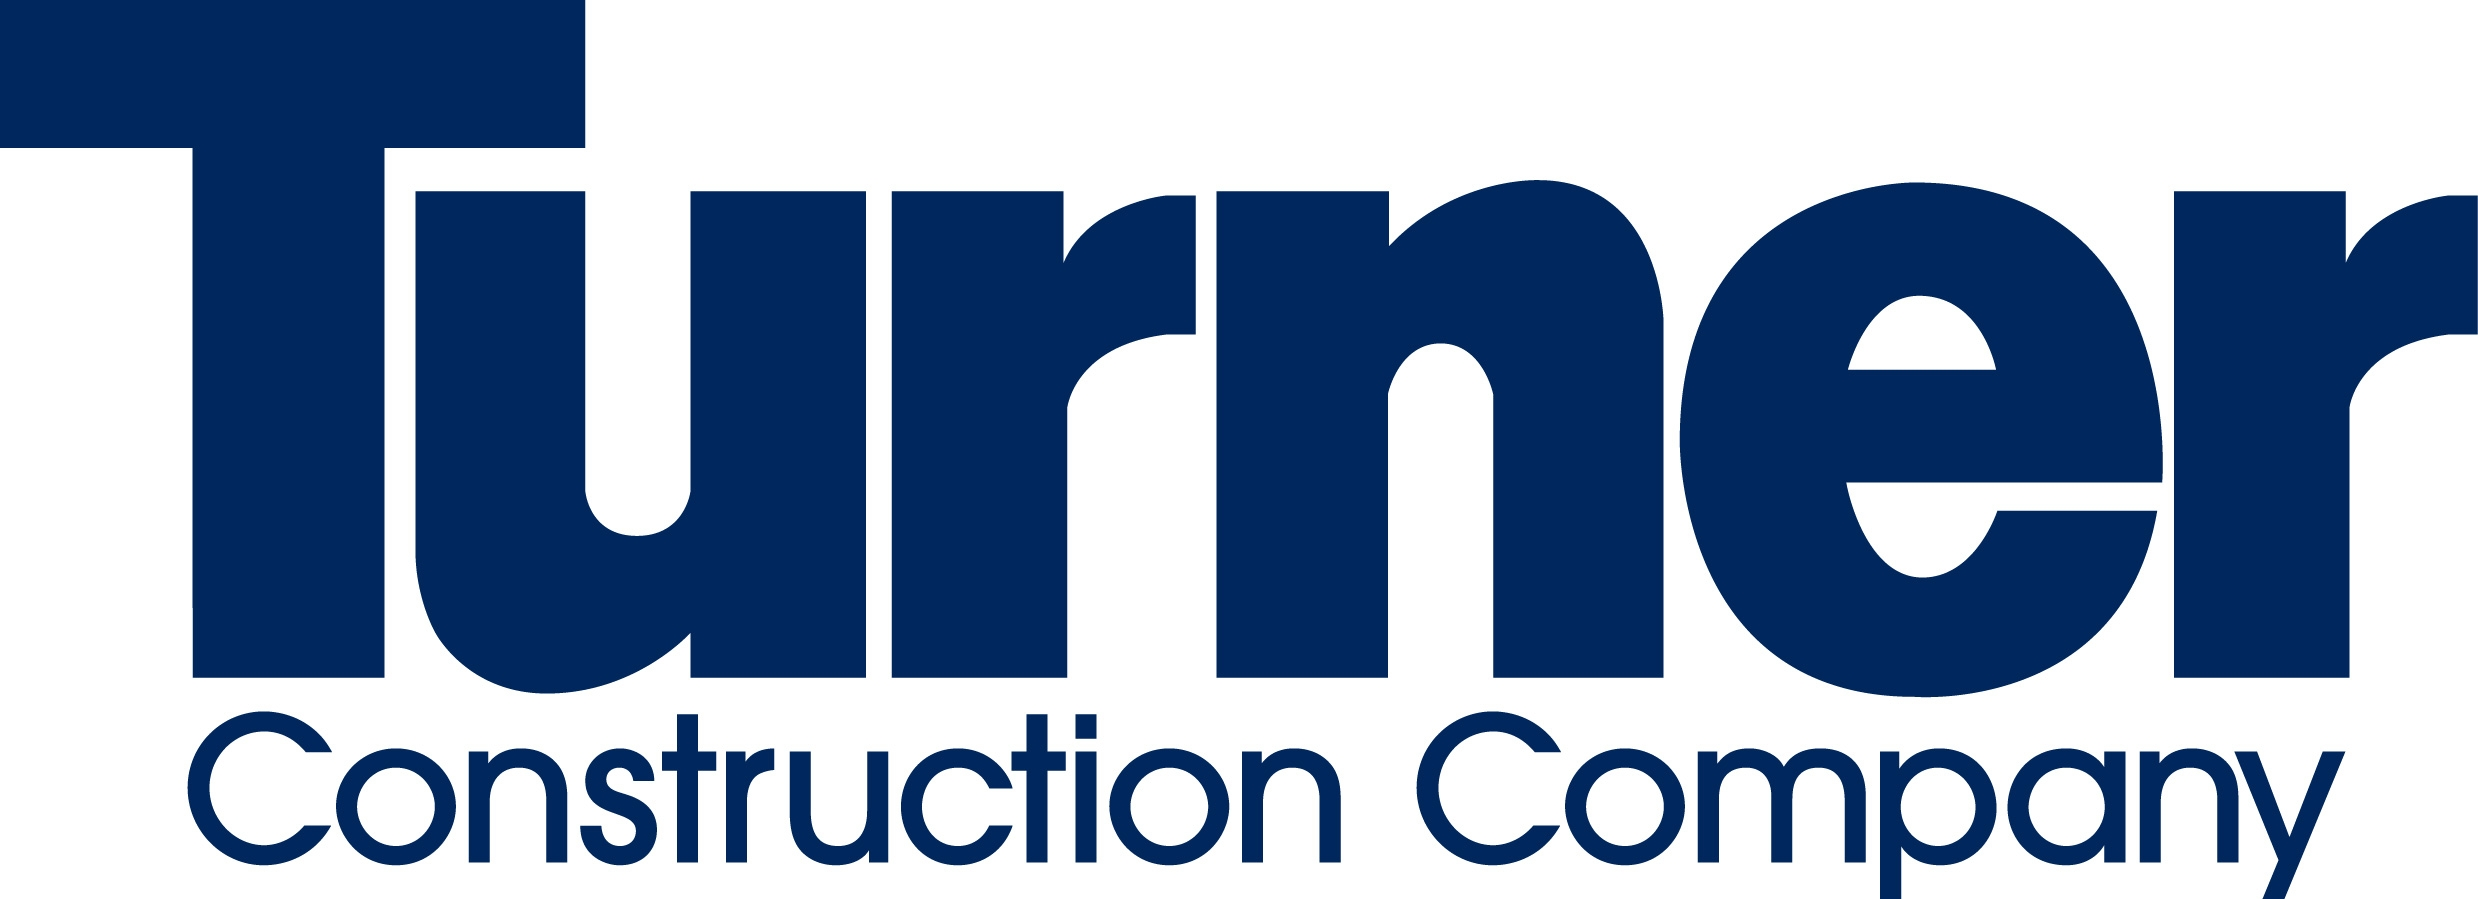 Logo-Turner-Construction.jpg